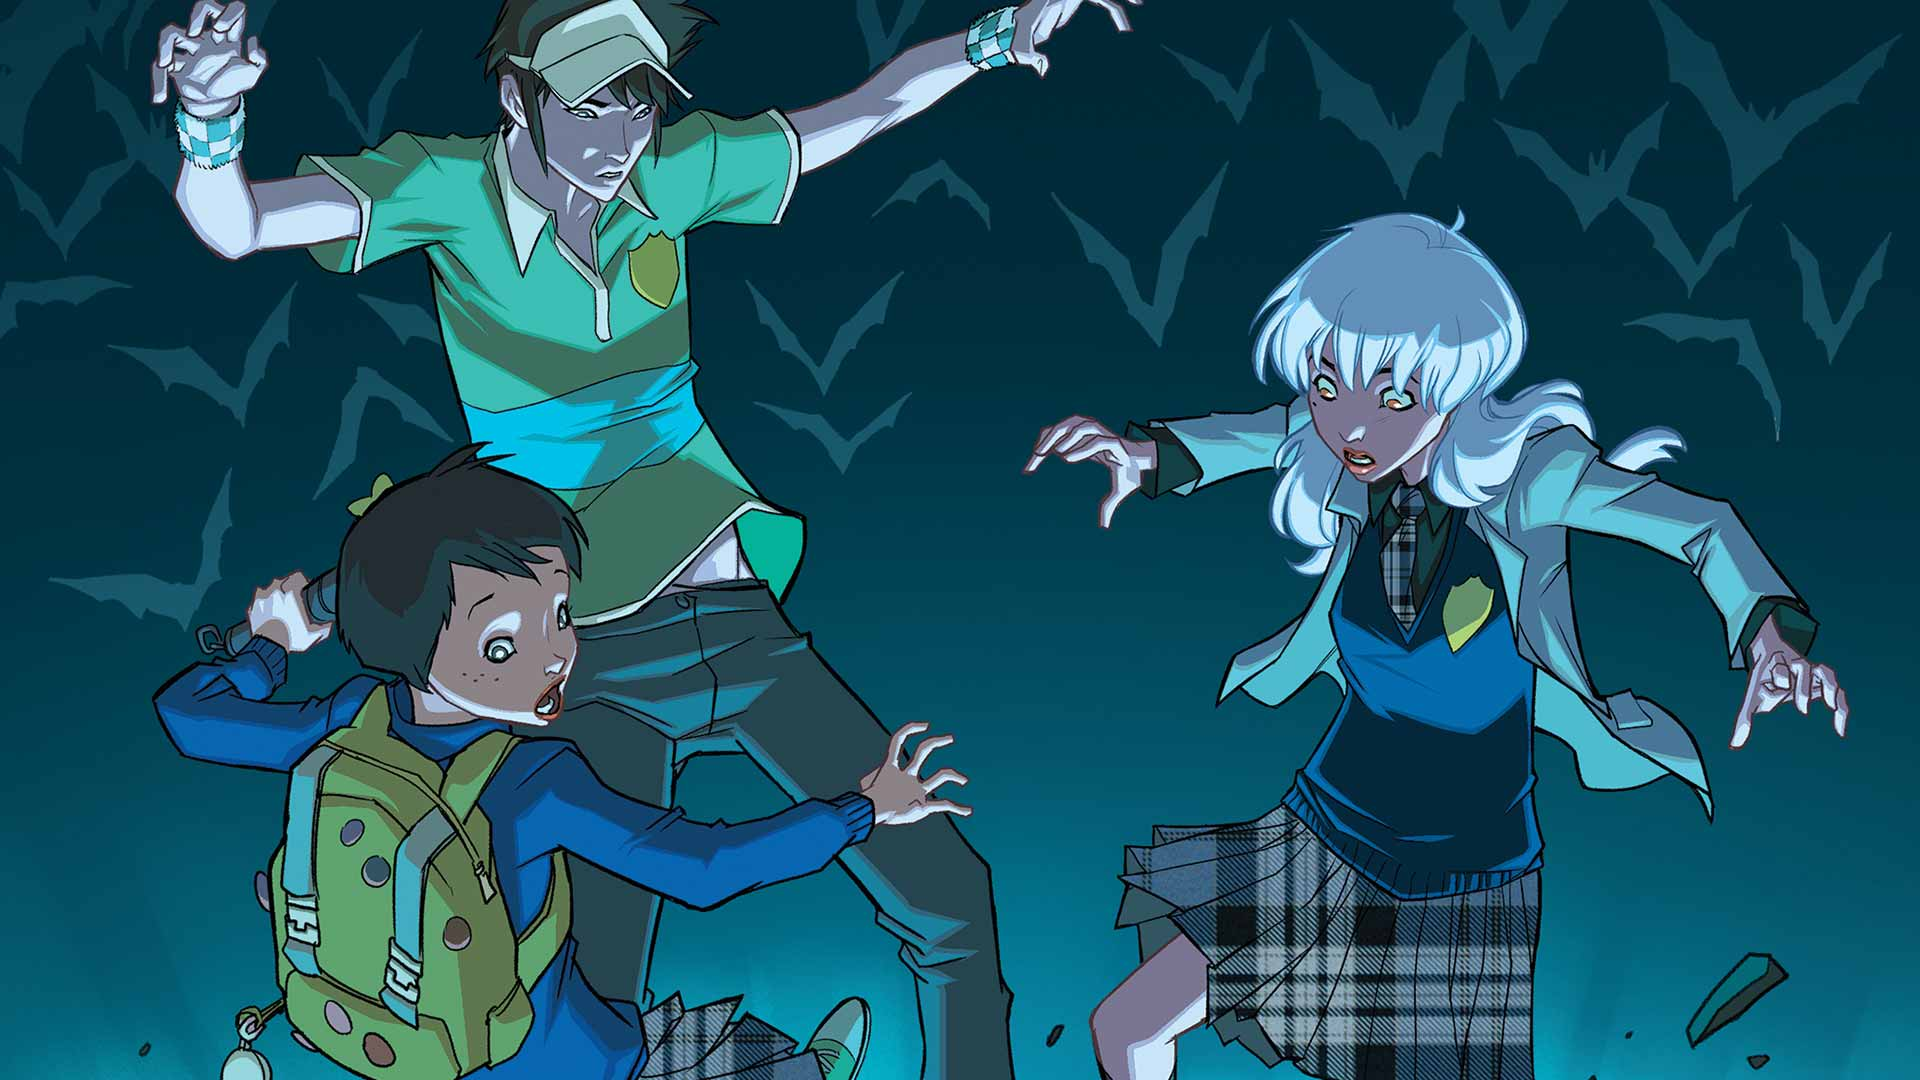 Gotham Academy #4: The Walls Are Listening